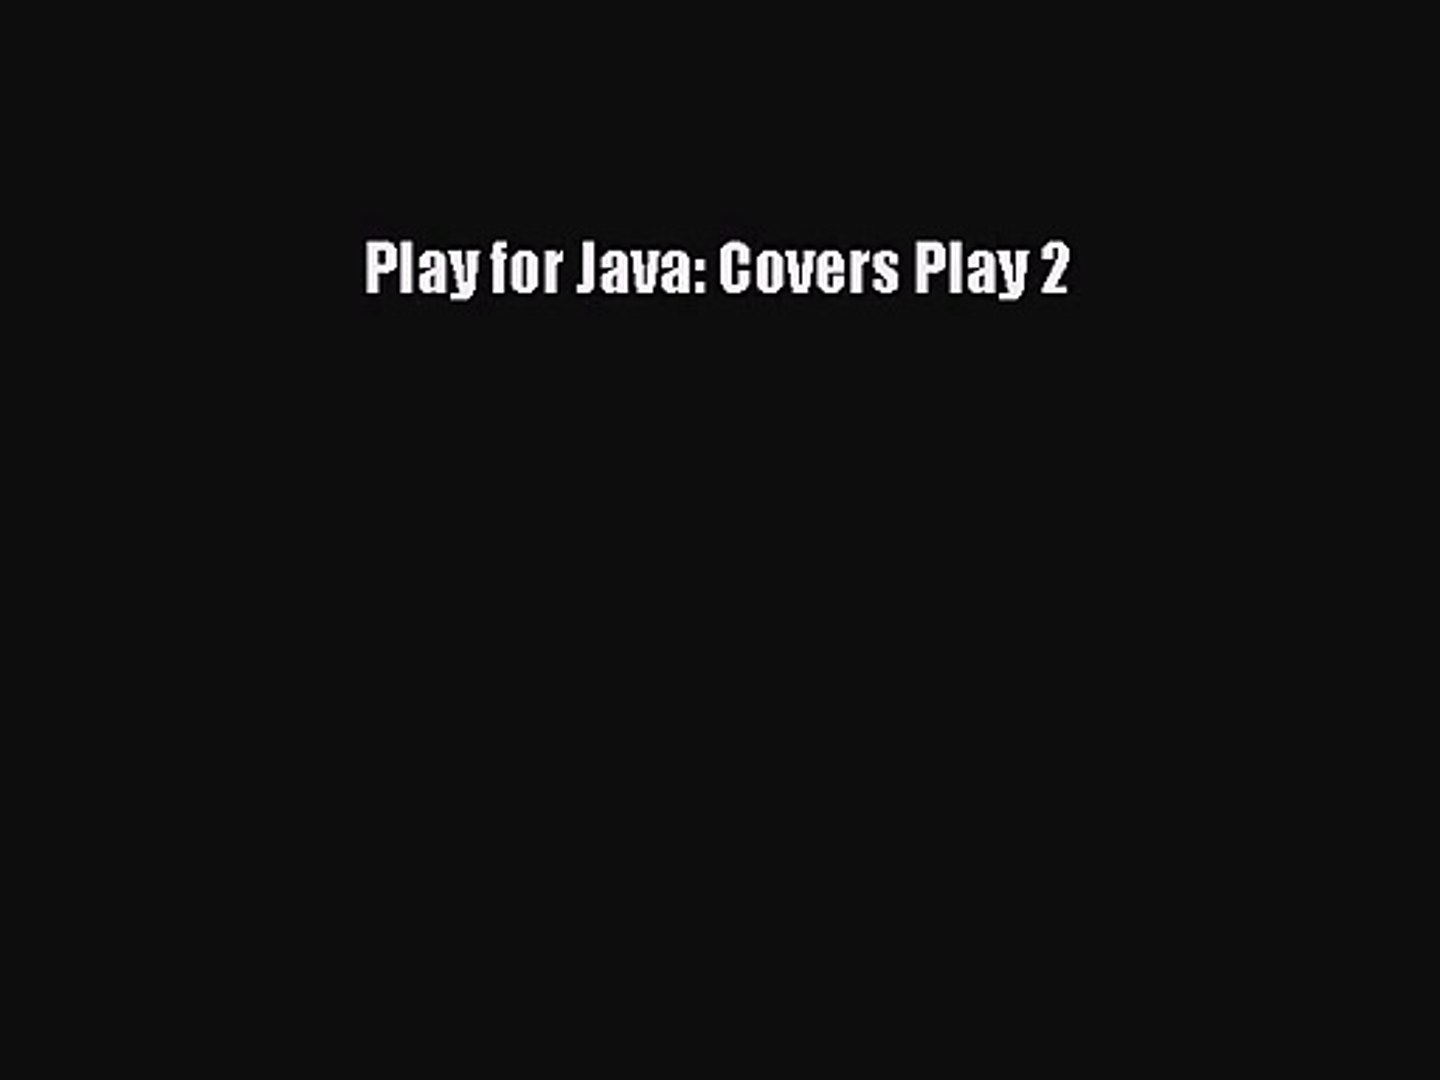 Play for Java: Covers Play 2 [PDF Download] Play for Java: Covers Play 2# [Read] Online